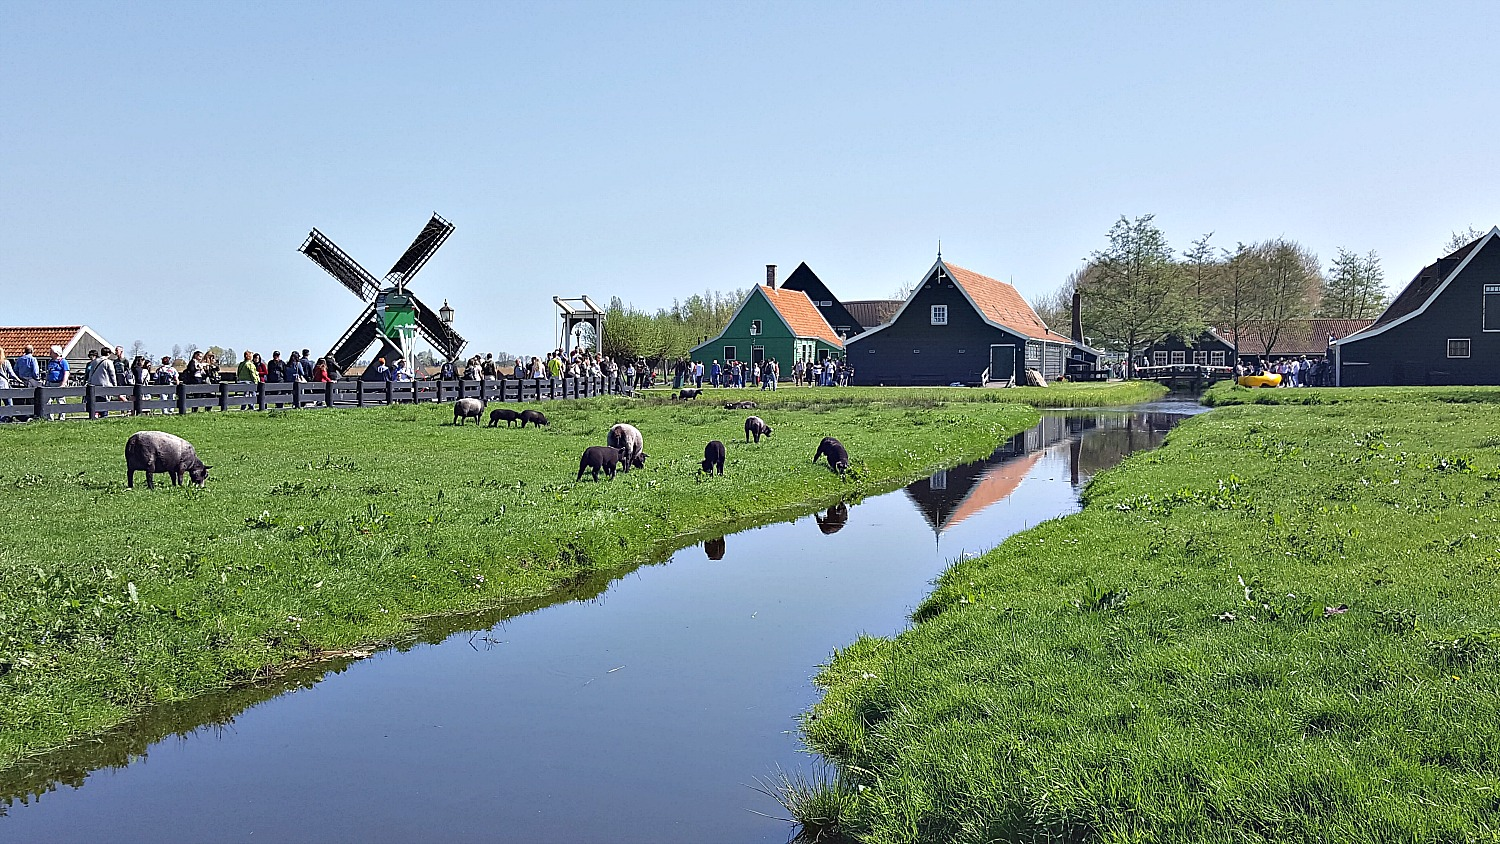 Best day trips from Amsterdam. Idyllic scene in Zaanse Schans village.